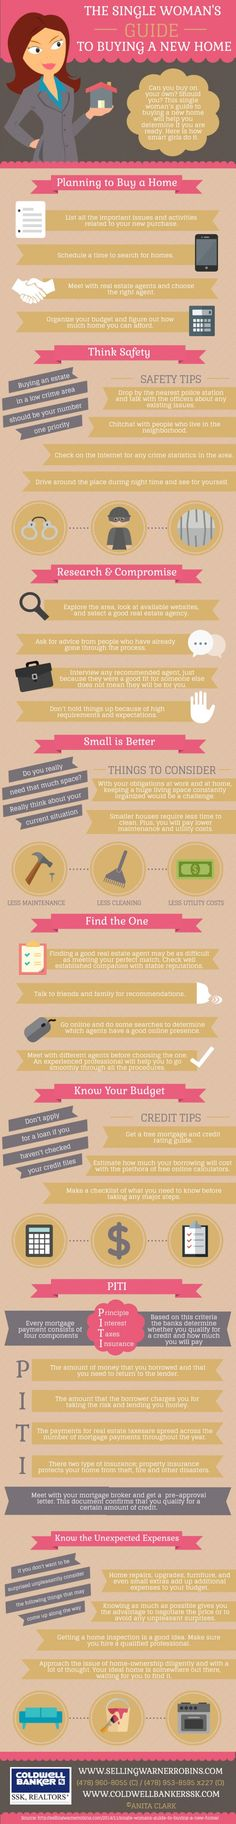 The Single Woman's Guide to Buying a New Home (infographic)  #ggda #ggpm